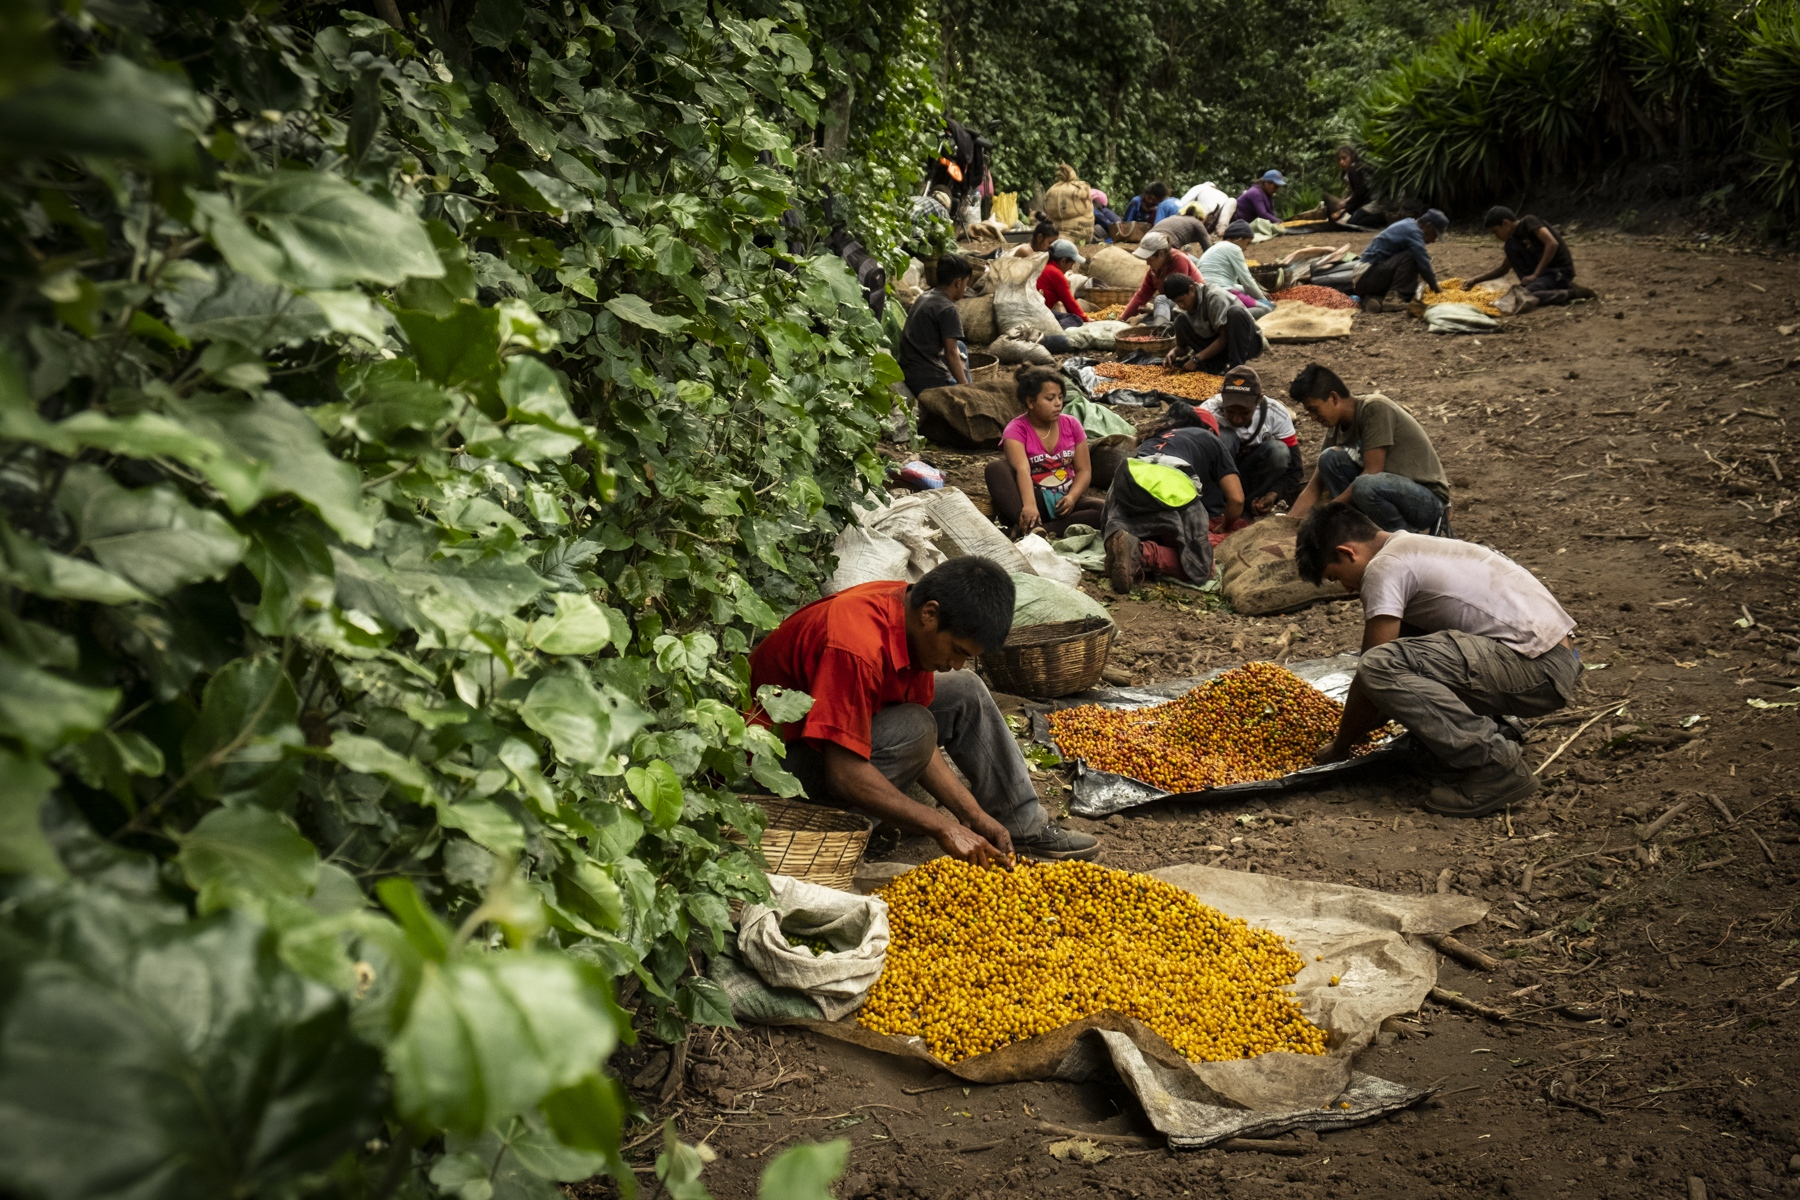 Farmers go through the coffee beans they picked earlier that day in Cerro Verde, El Salvador. With rising temperatures due to climate change, coffee producers have been unable to completely recover from the loss.